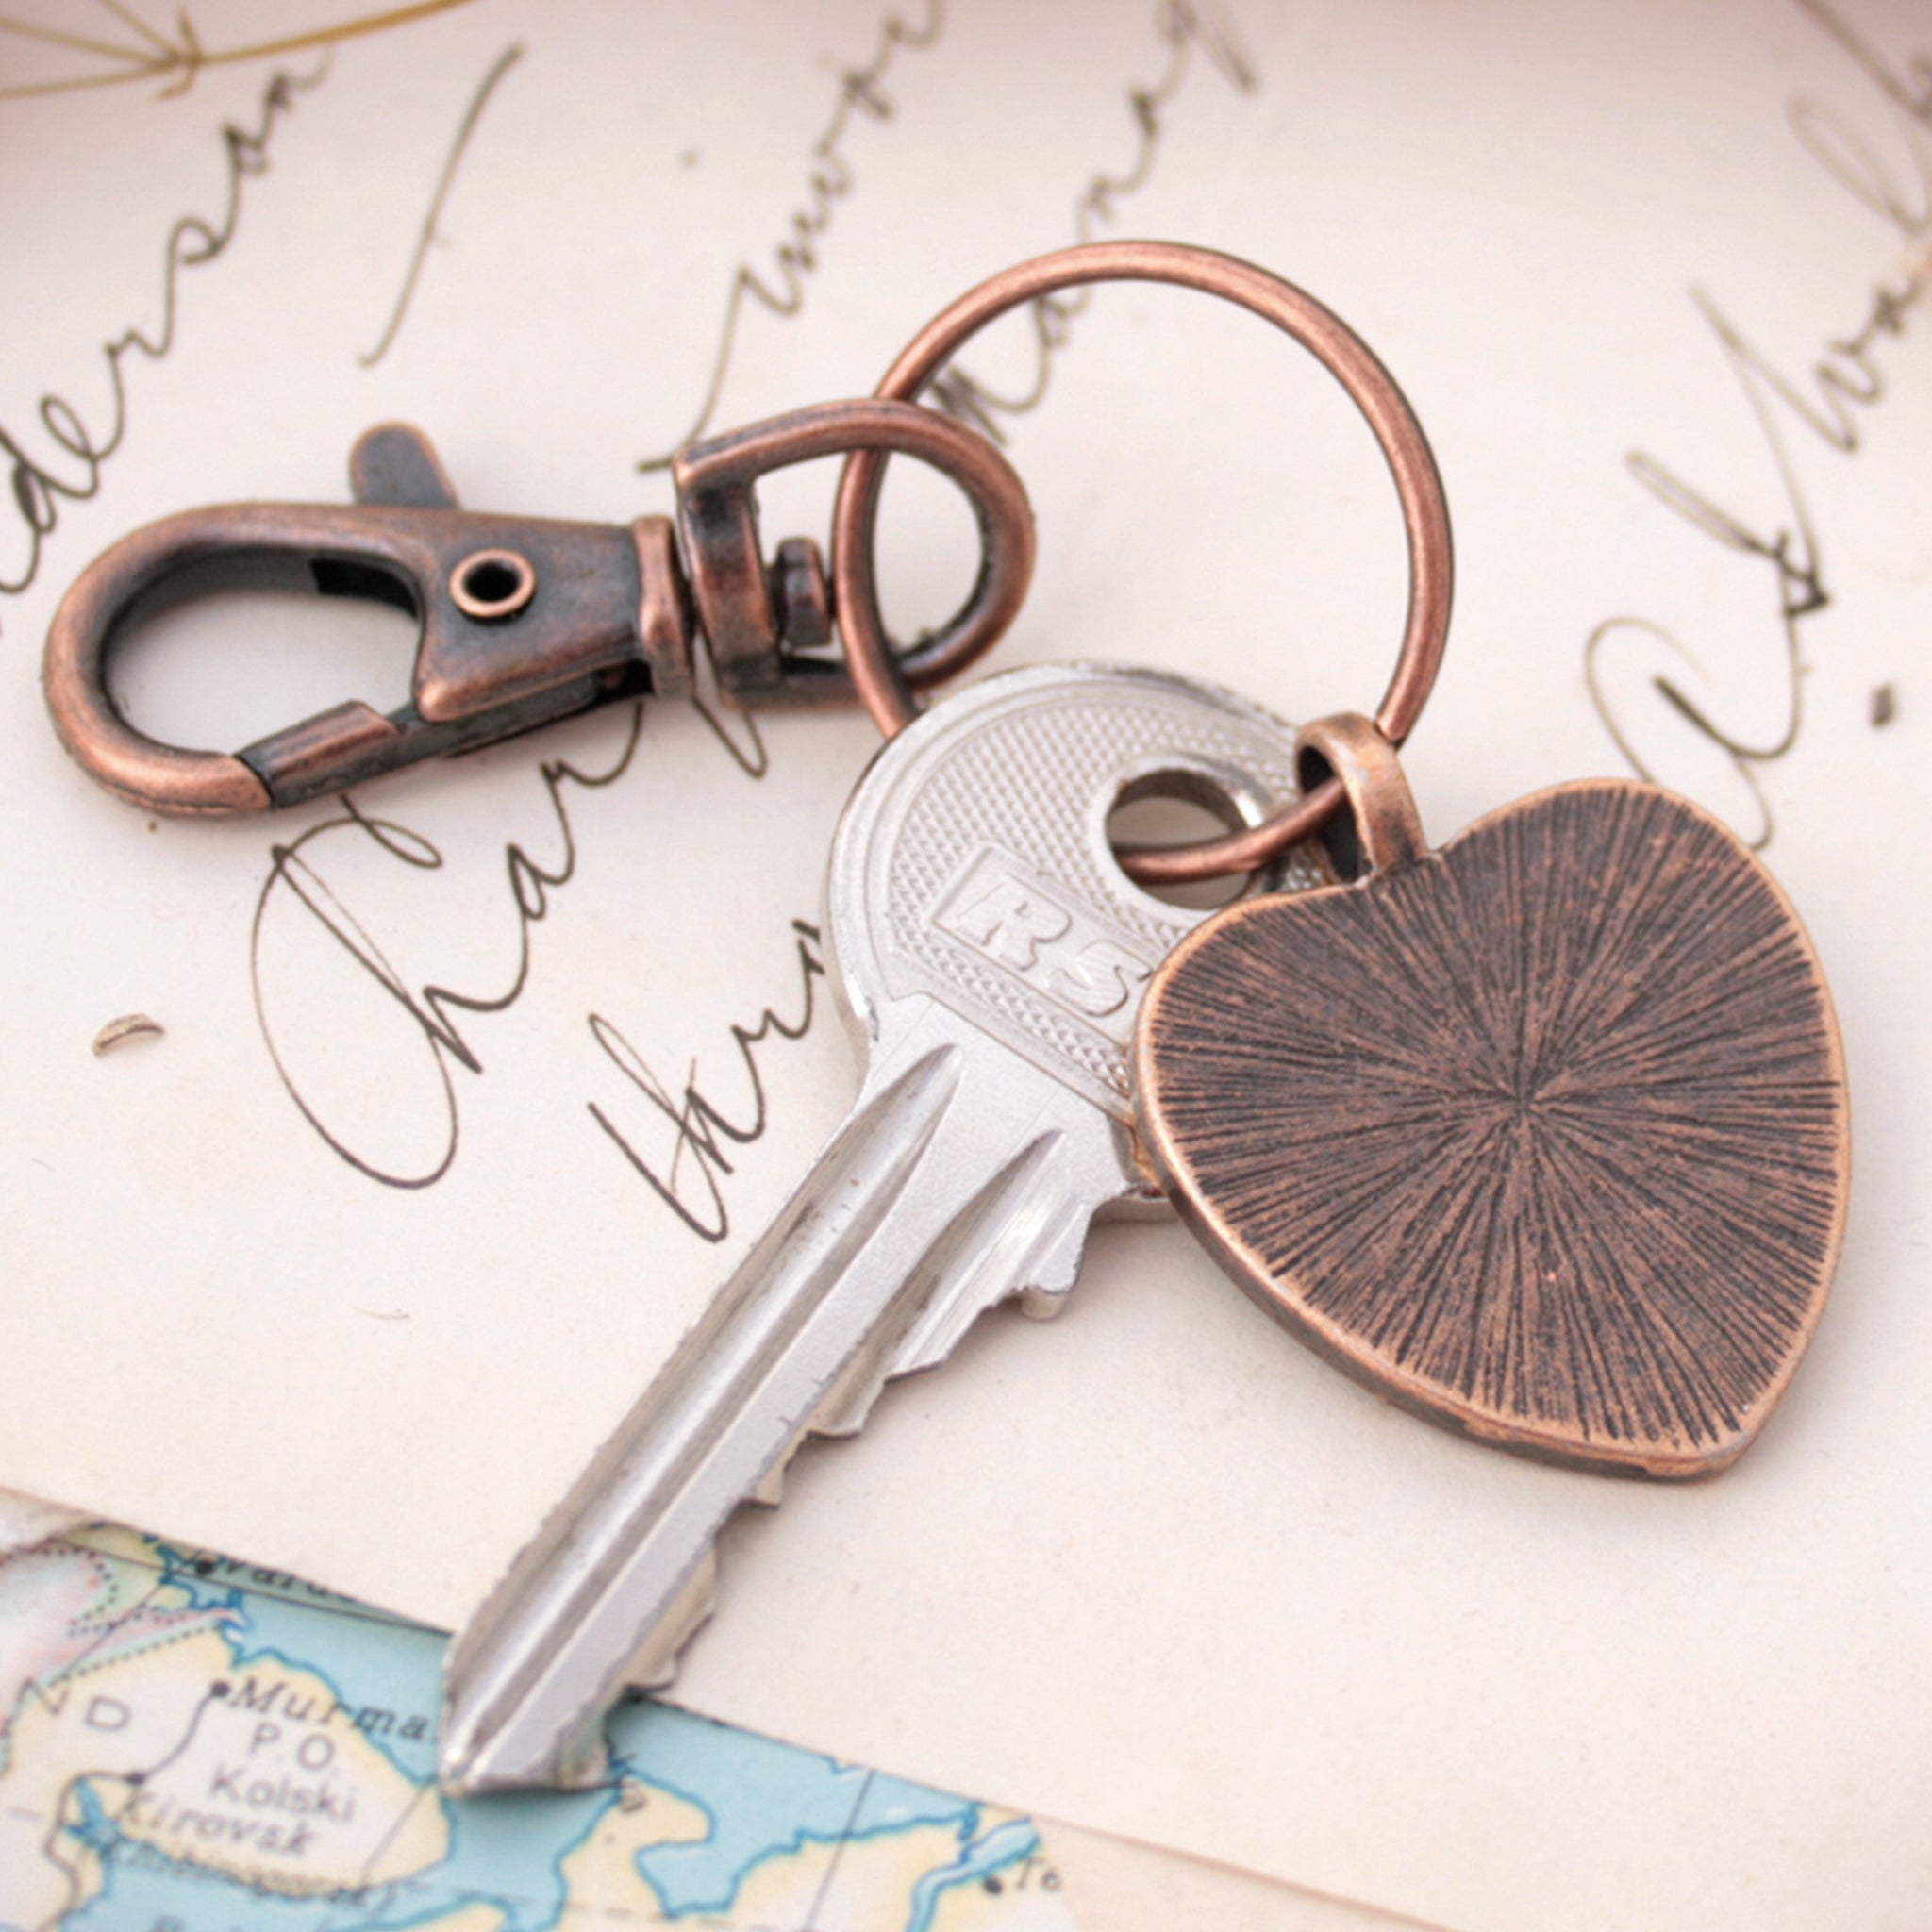 Heart shaped keychain in copper tone